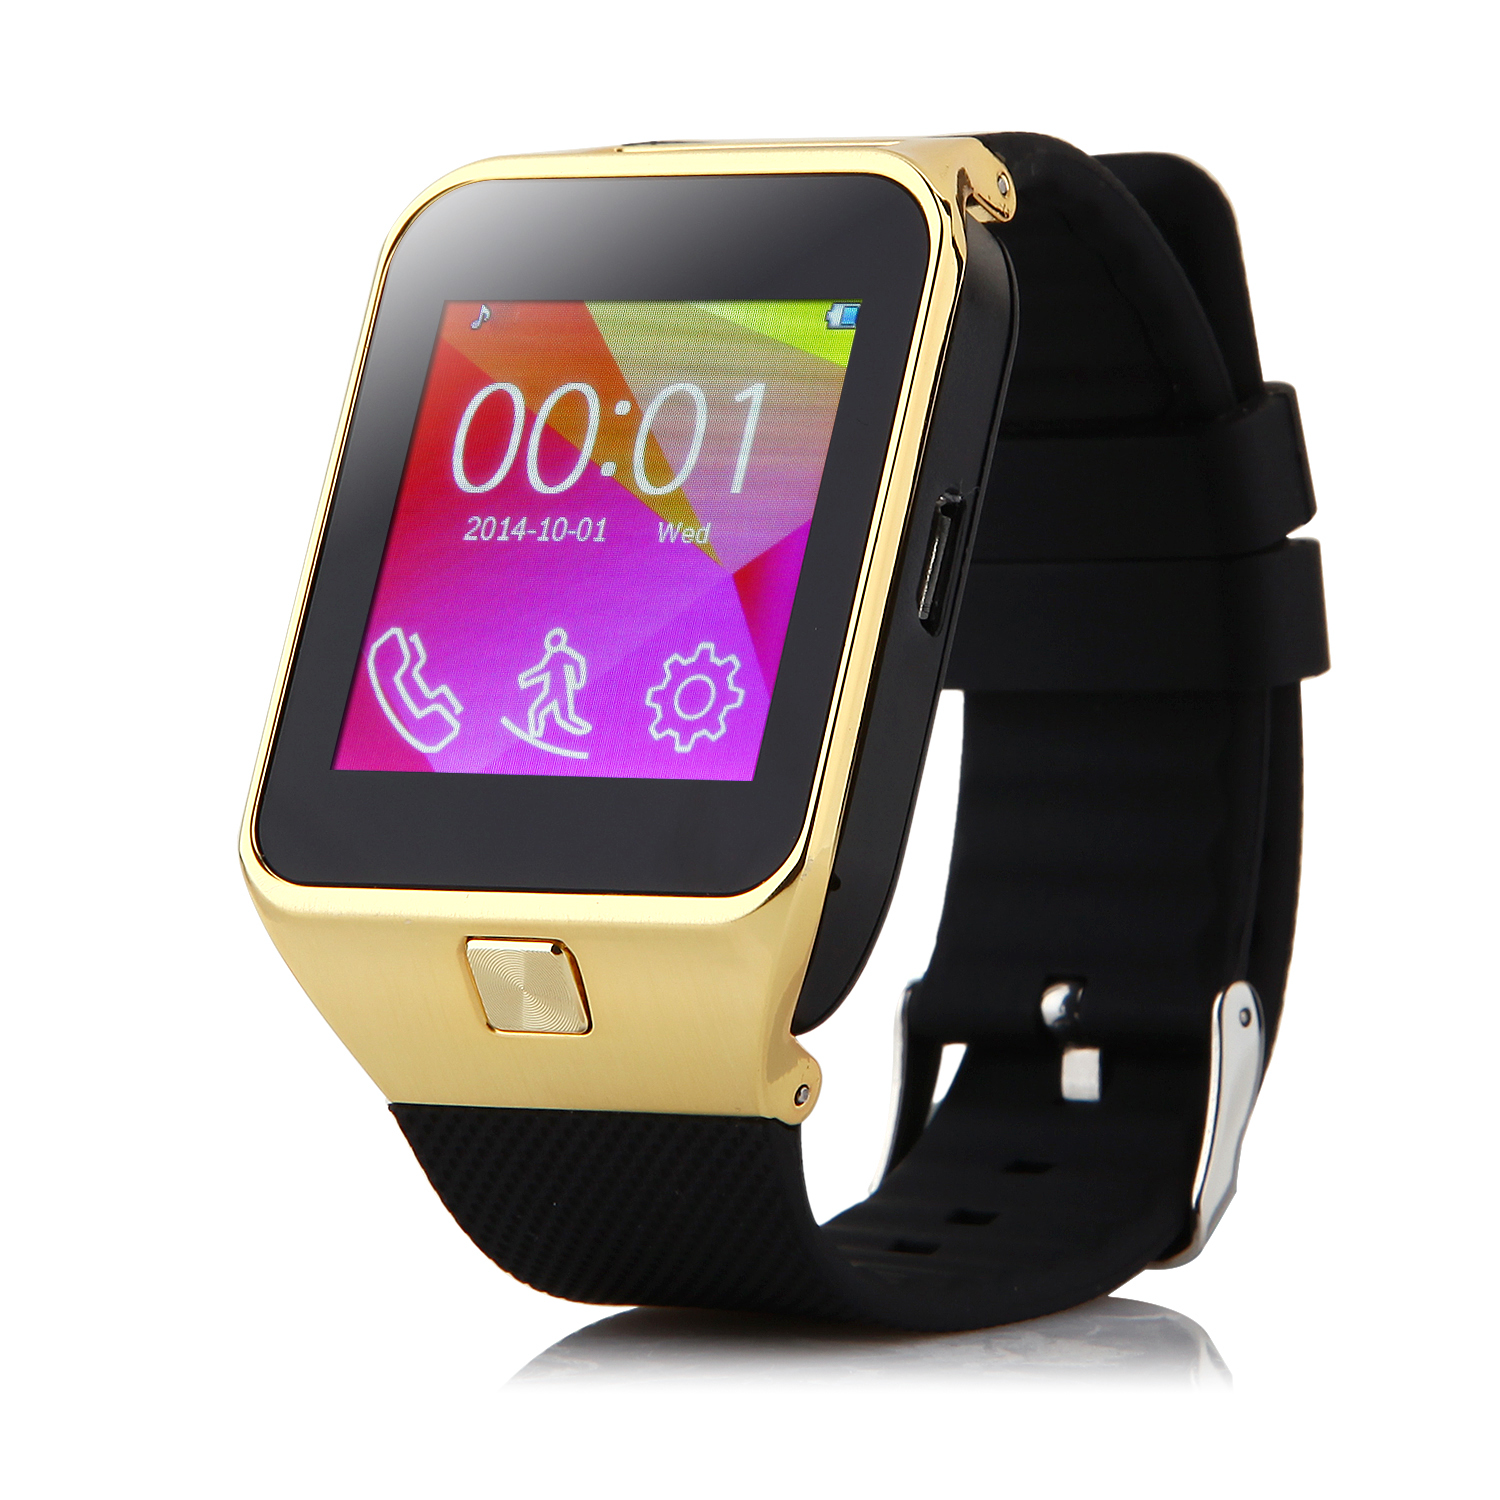 ZGPAX S29 Watch Phone Bluetooth Watch Quad Band 1.54 Inch FM Camera Golden